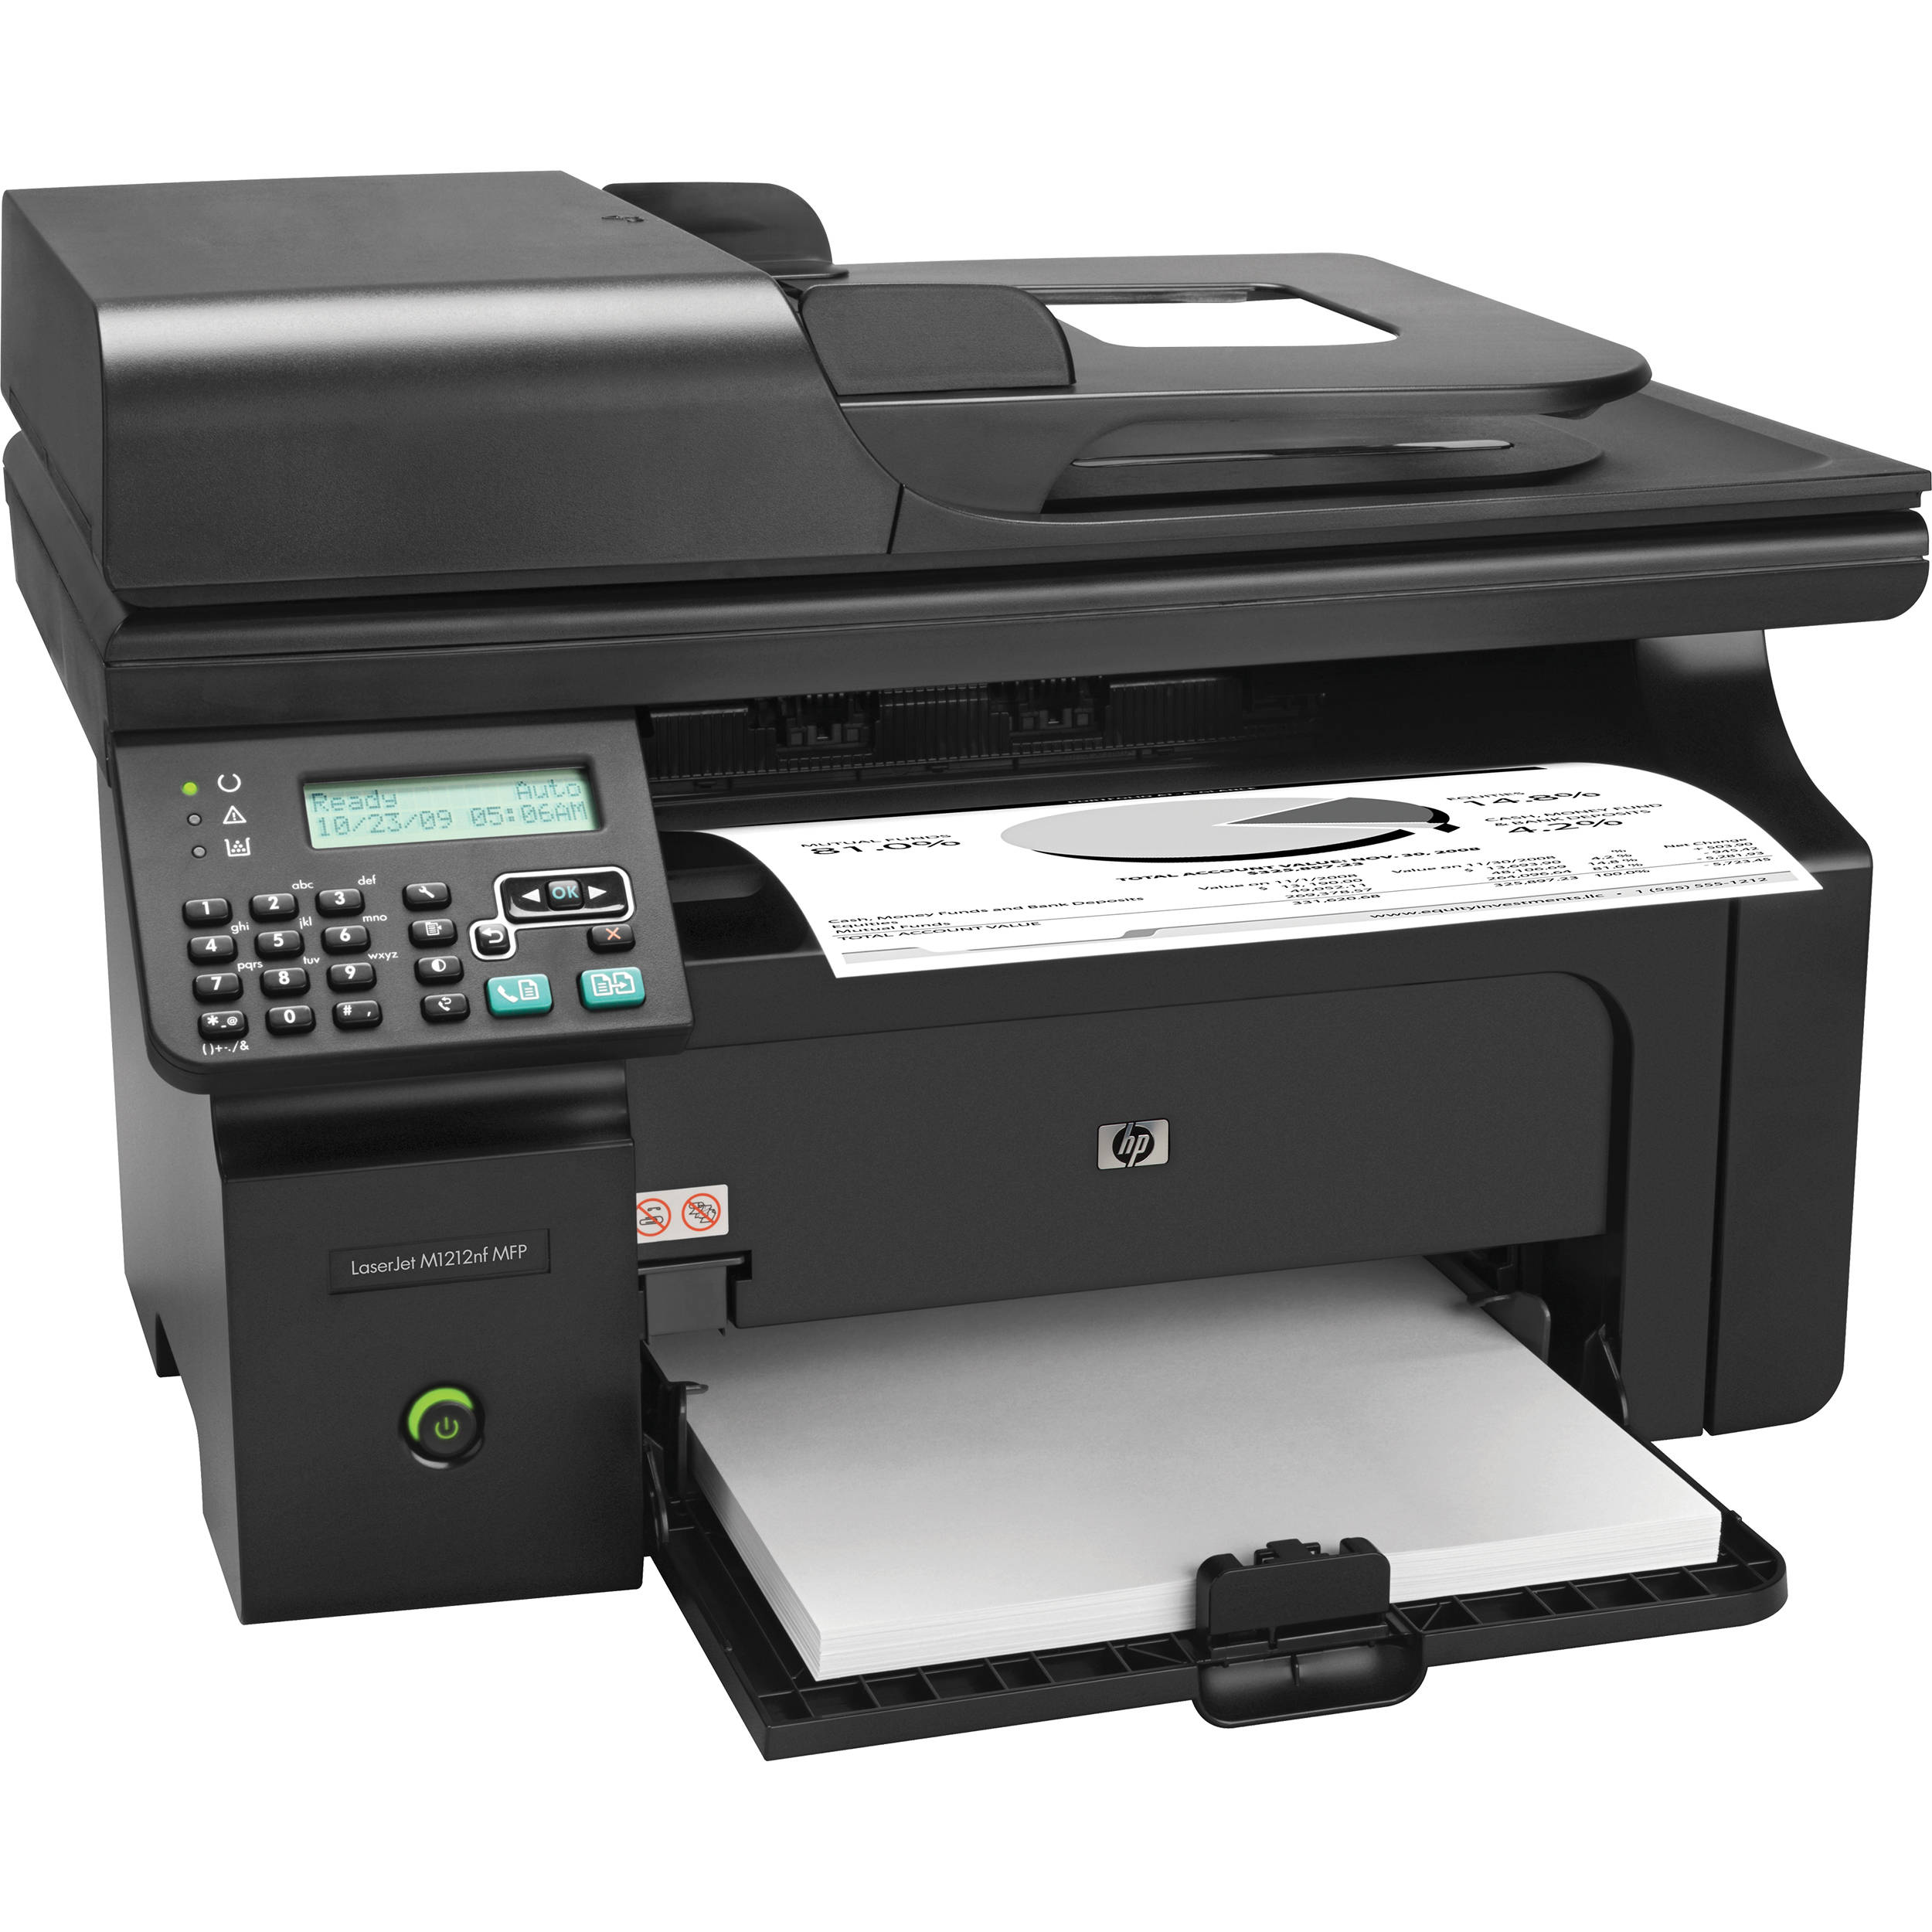 Hp laserjet m4345 mfp service manual download